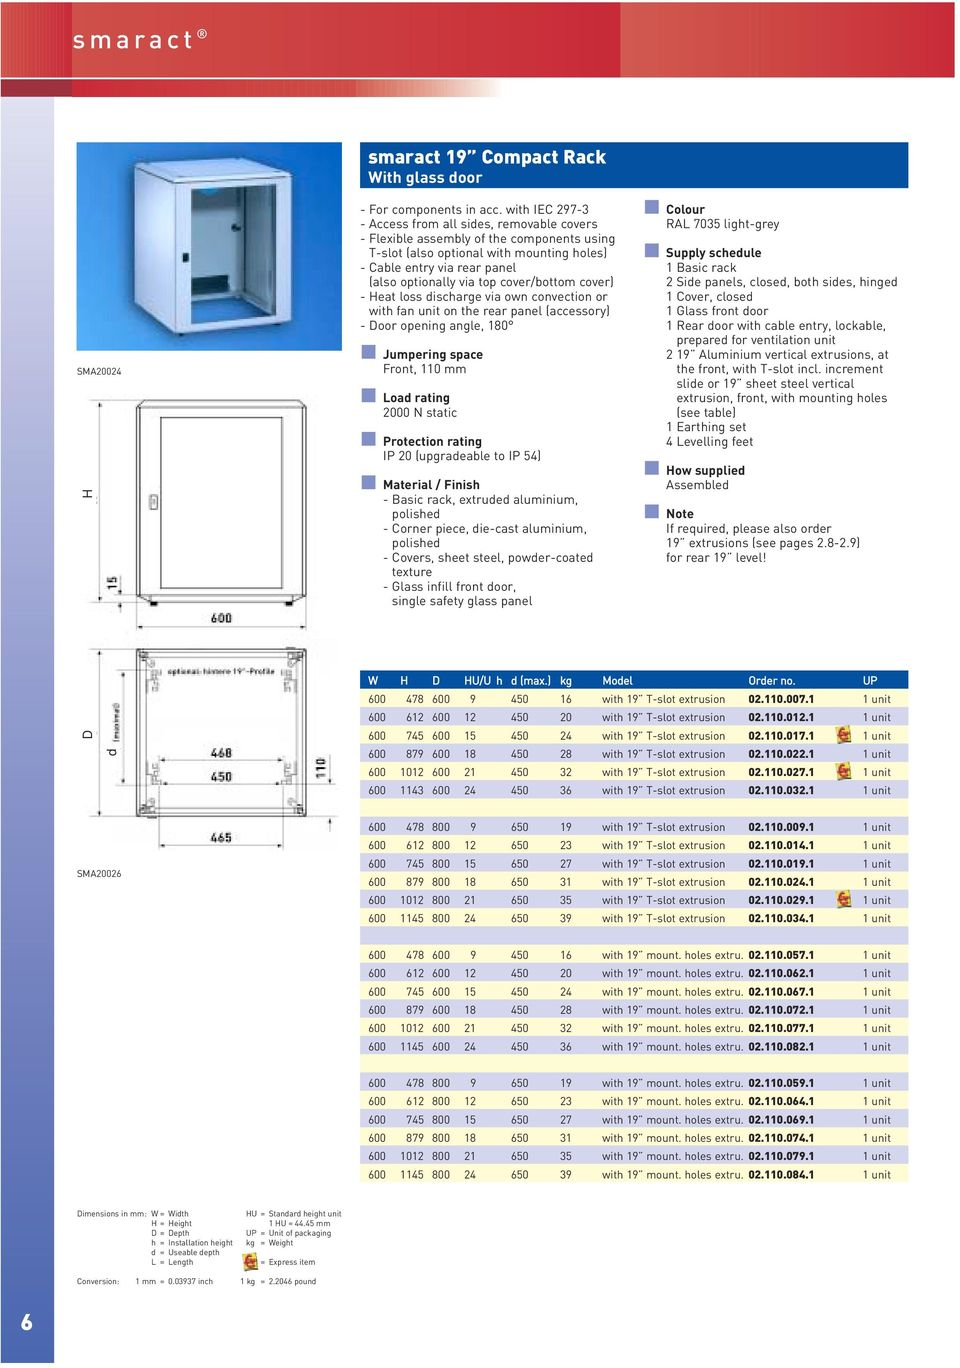 cover/bottom cover) - Heat loss discharge via own convection or with fan unit on the rear panel (accessory) - Door opening angle, 180 Jumpering space Front, 110 mm Load rating 2000 N static